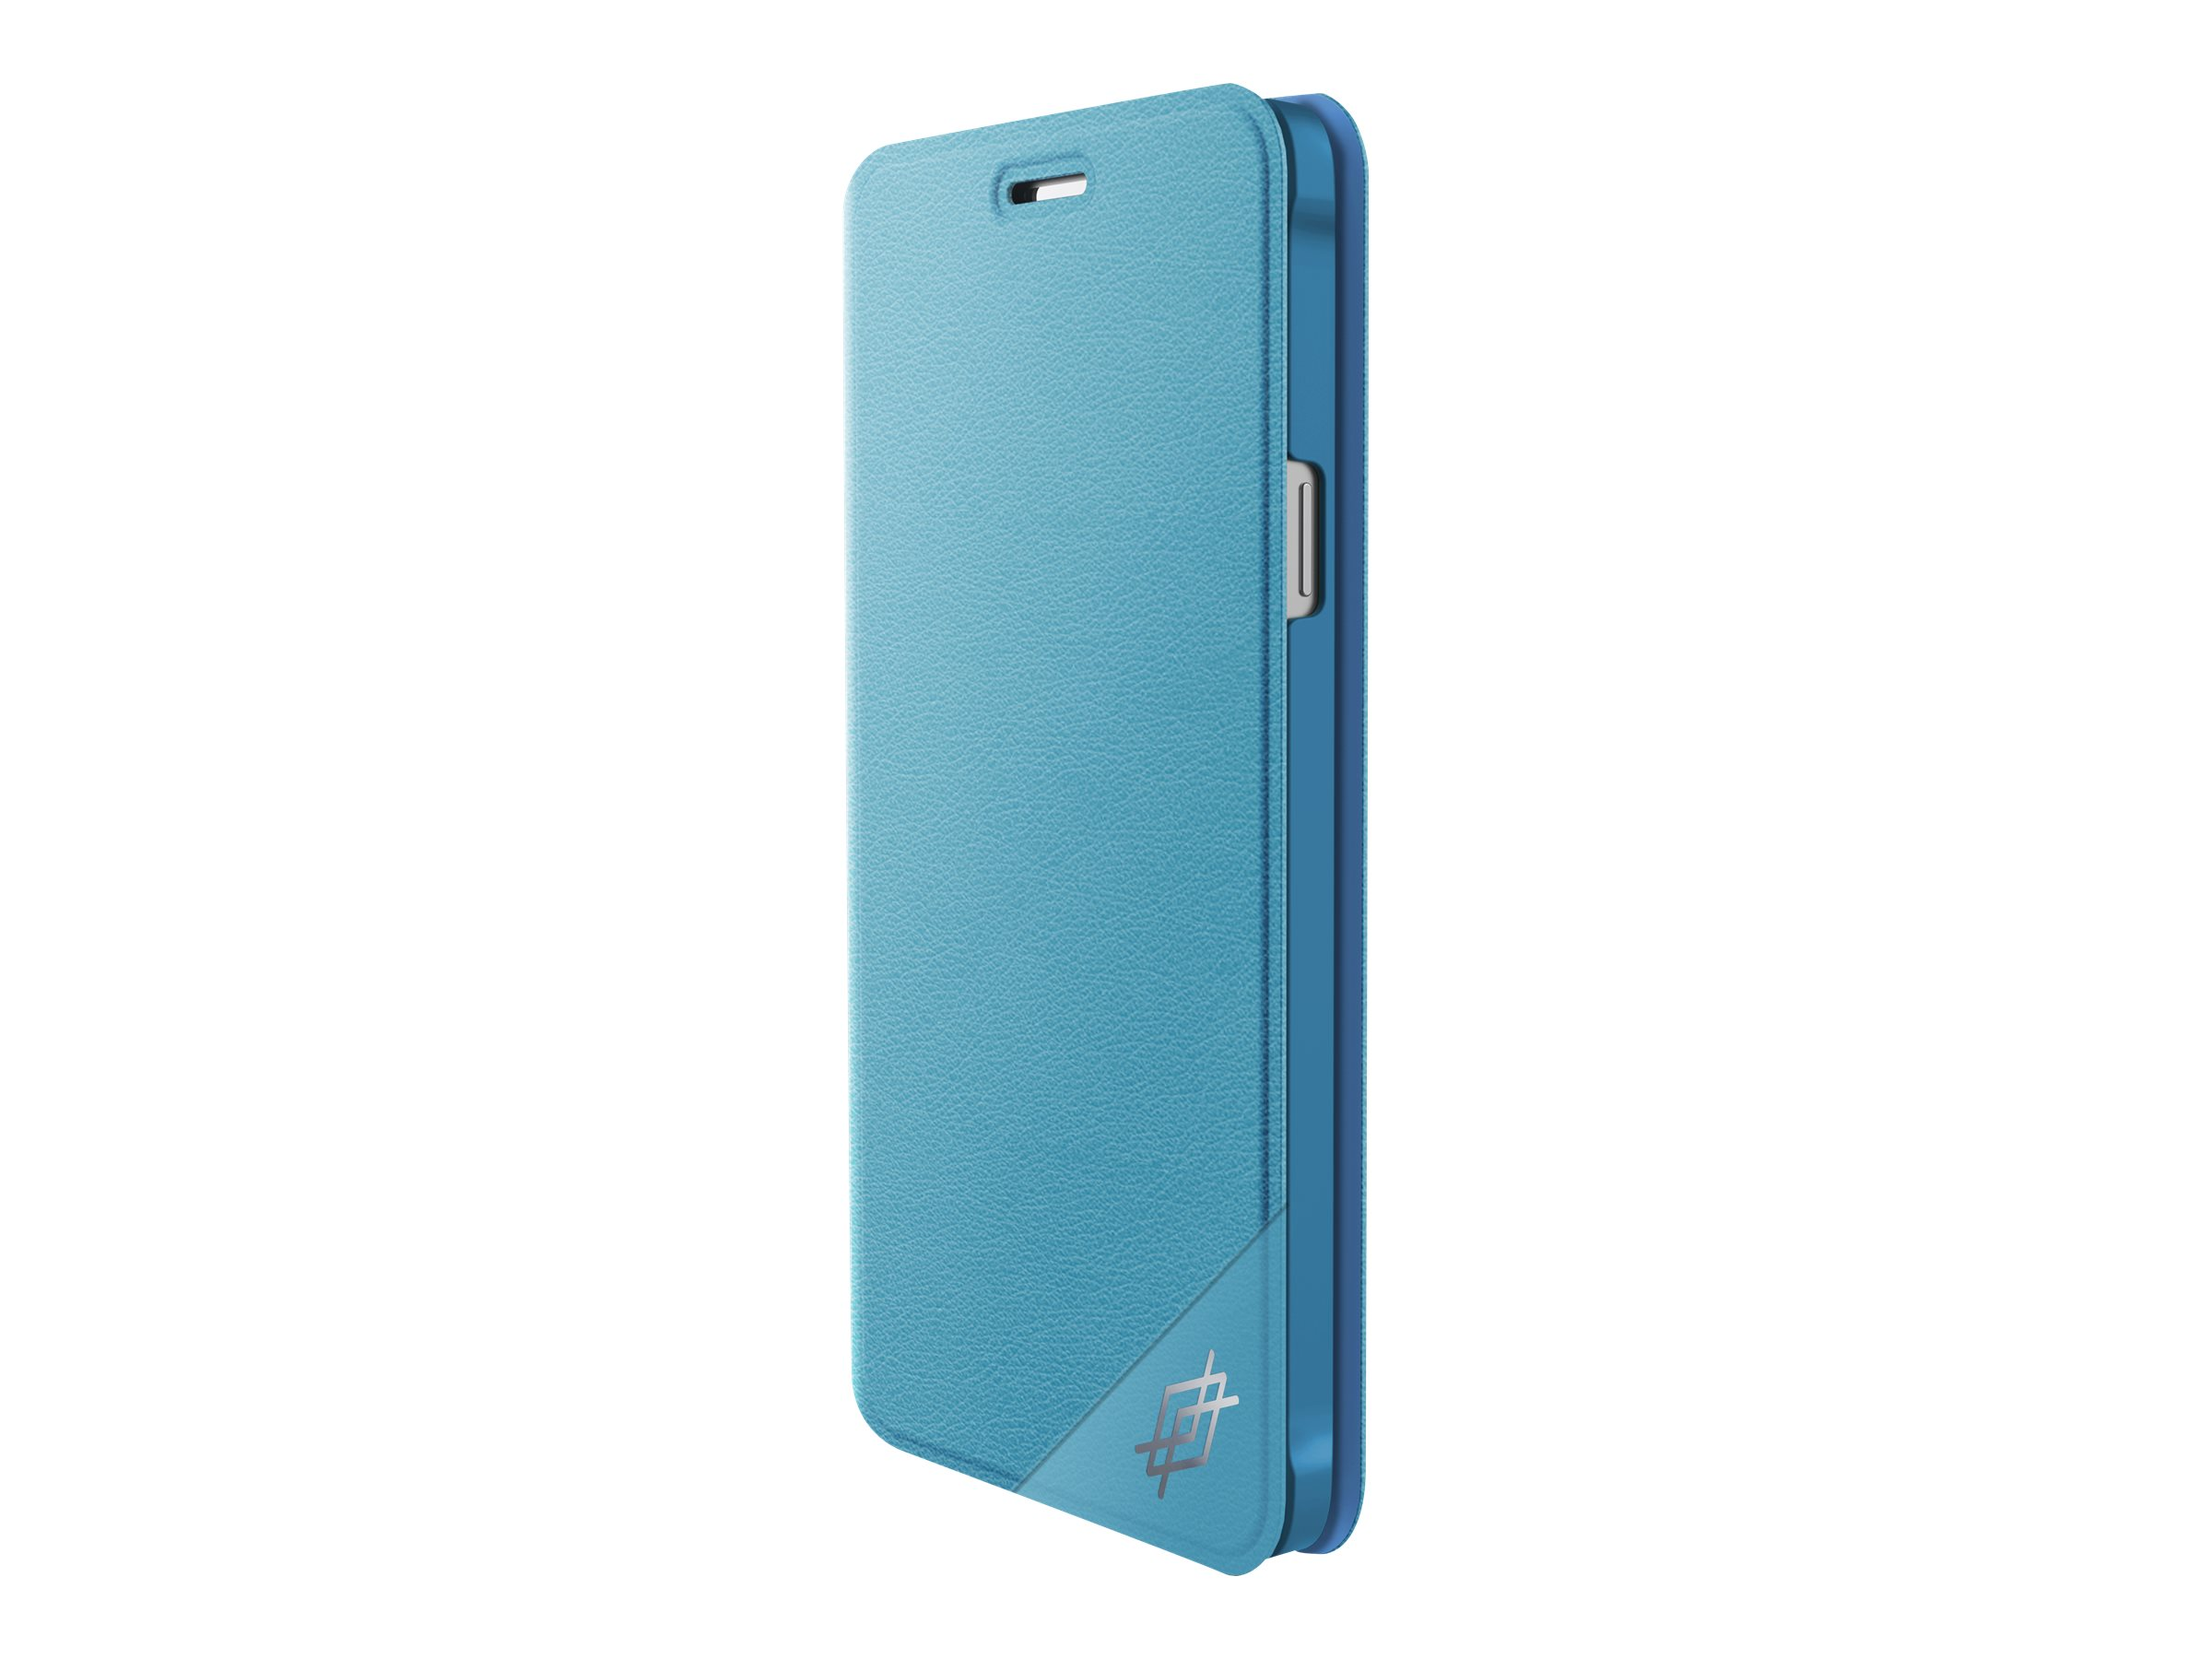 X-Doria Dash Folio One - Protection à rabat pour Samsung Galaxy Note 4 - bleu